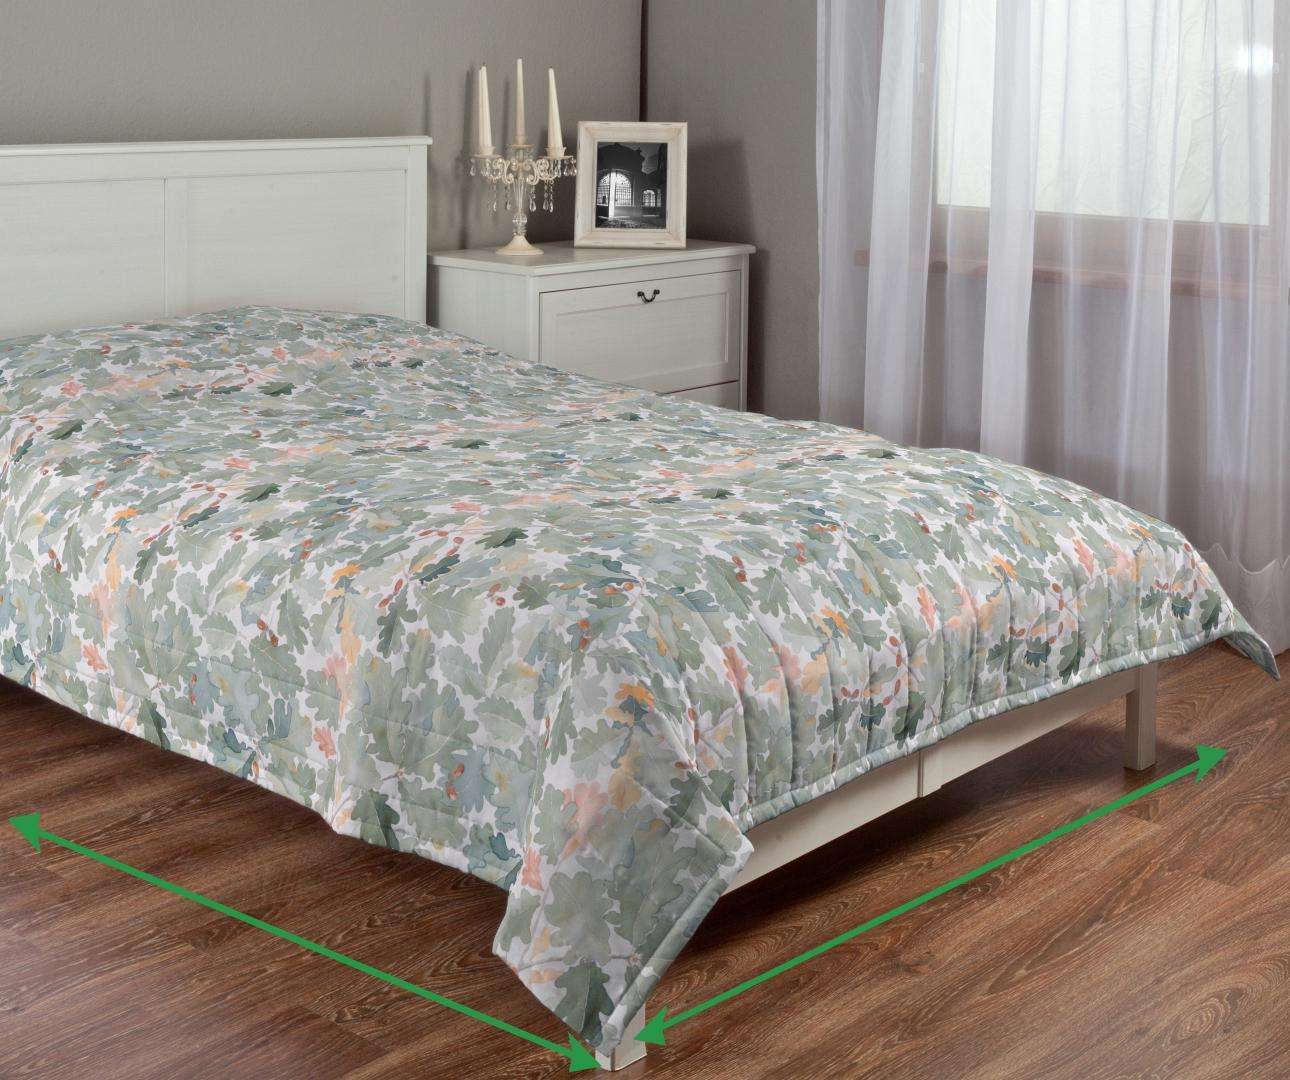 Quilted throw (vertical quilt pattern) in collection Norge, fabric: 150-17